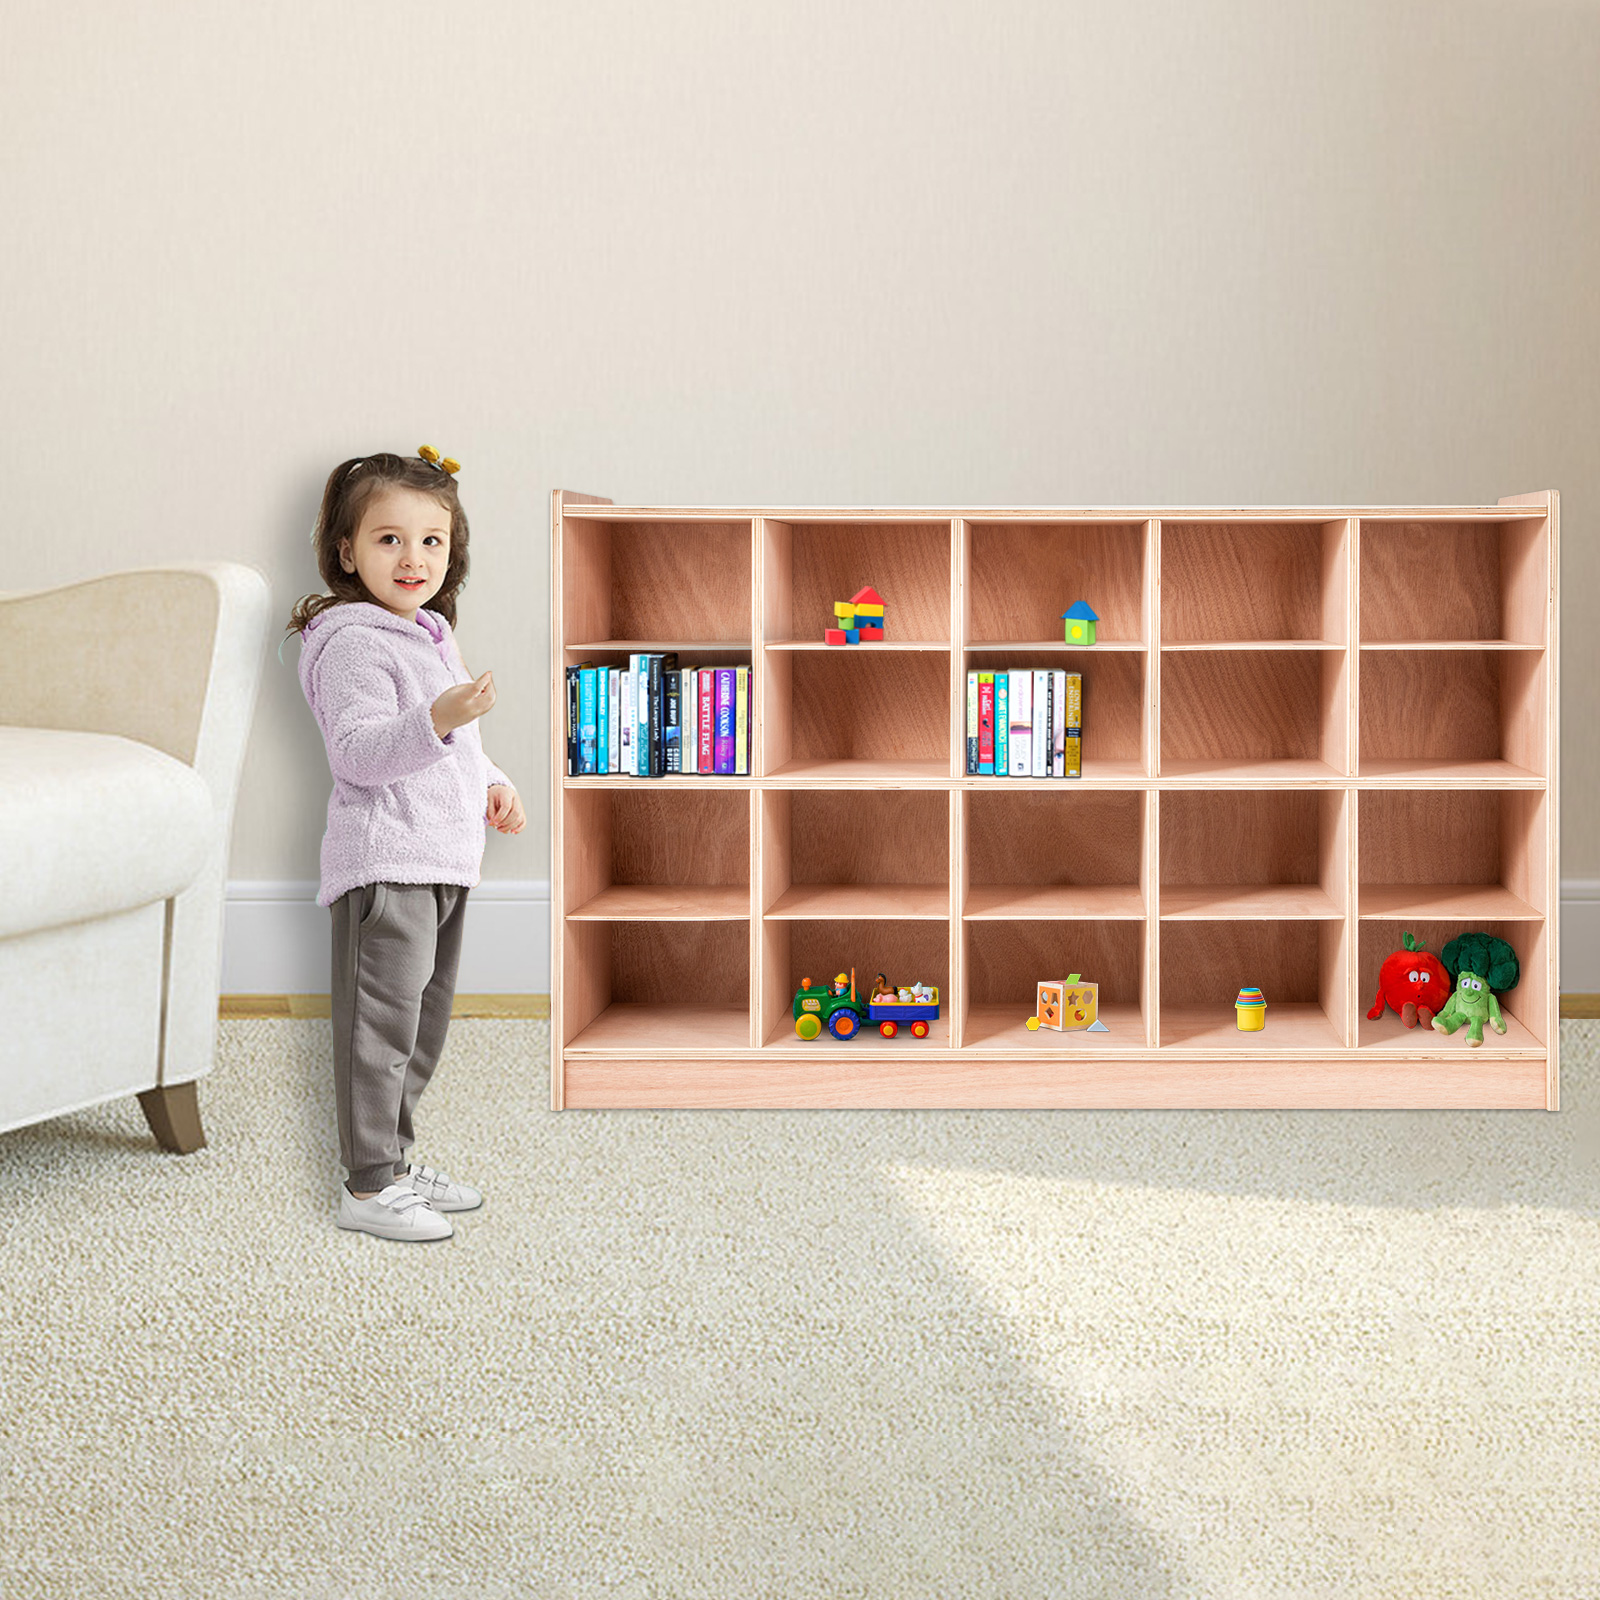 Classroom-Storage-Cabinet-Wooden-Cubby-20-Grids-Organizer-W-Casters-Non-toxic thumbnail 9